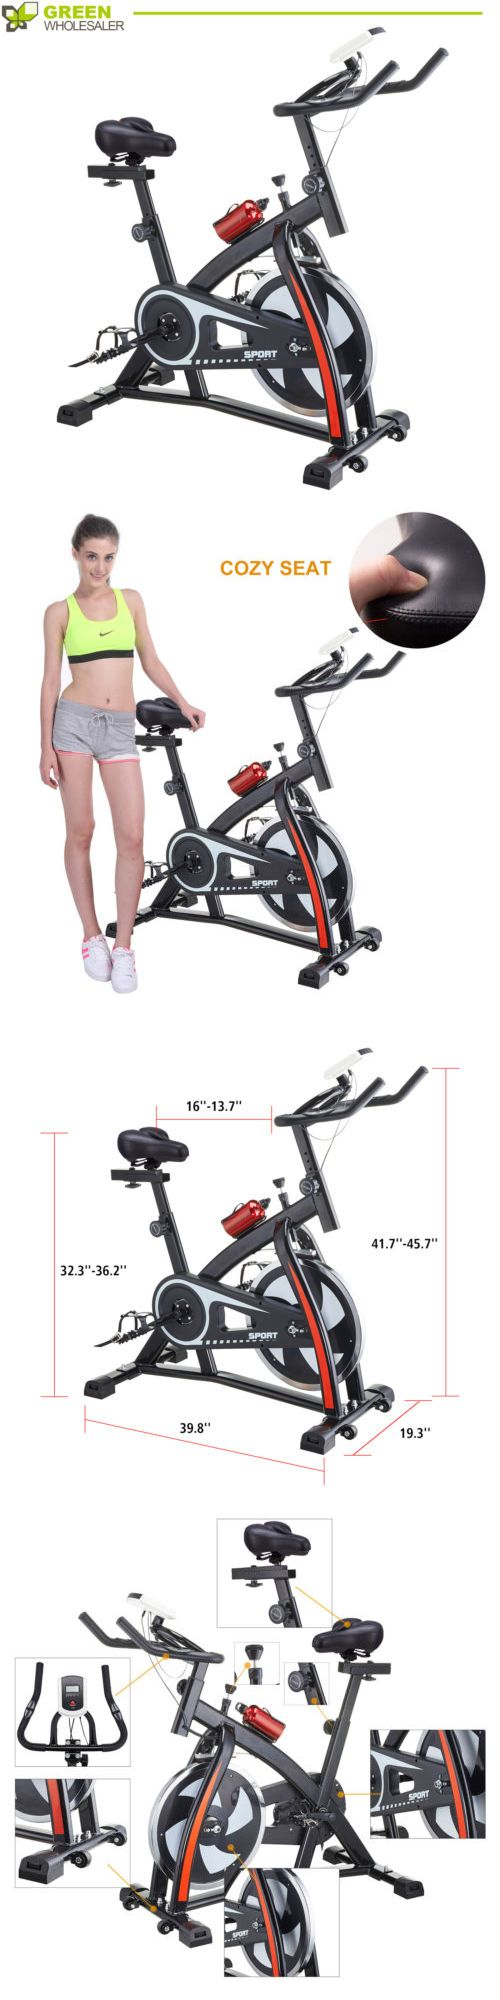 Exercise Bikes 58102: Stationary Upright Exercise Bike Bicycle Cardio Cycling Fitness Lcd And Cozy Seat -> BUY IT NOW ONLY: $157 on eBay!